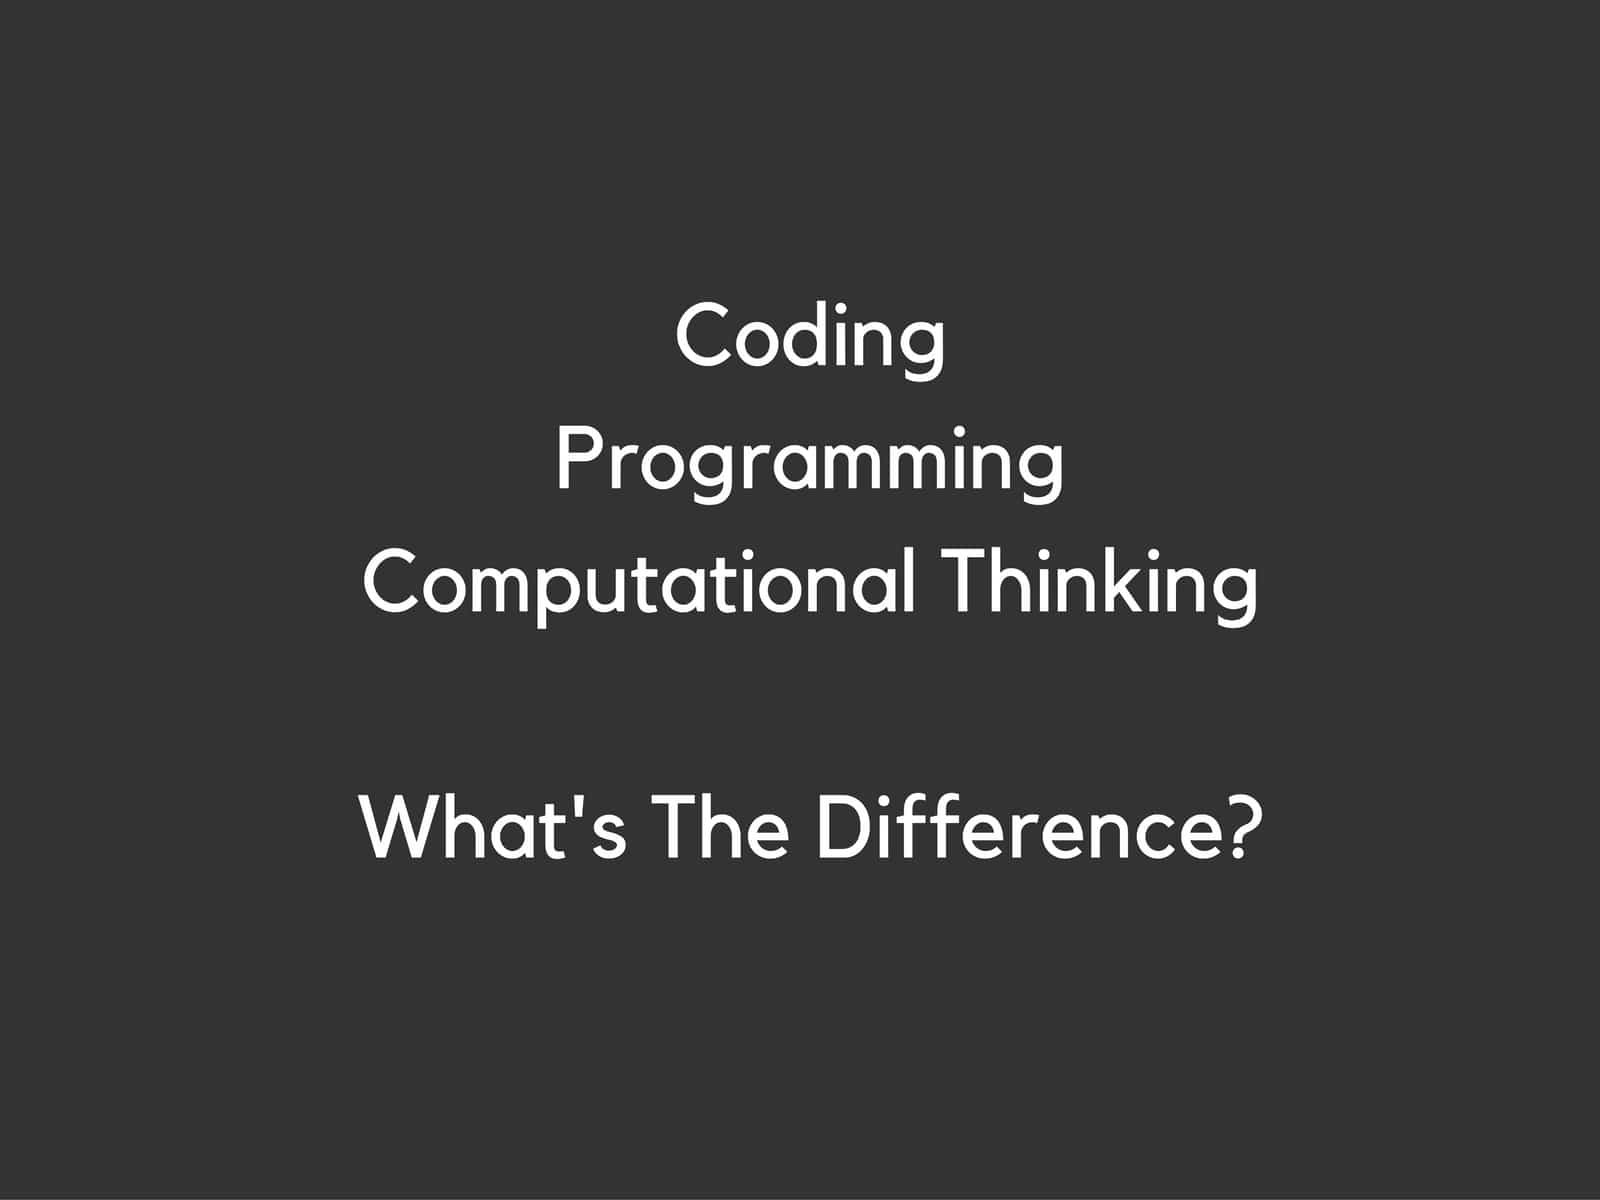 Coding Programming Computational Thinking